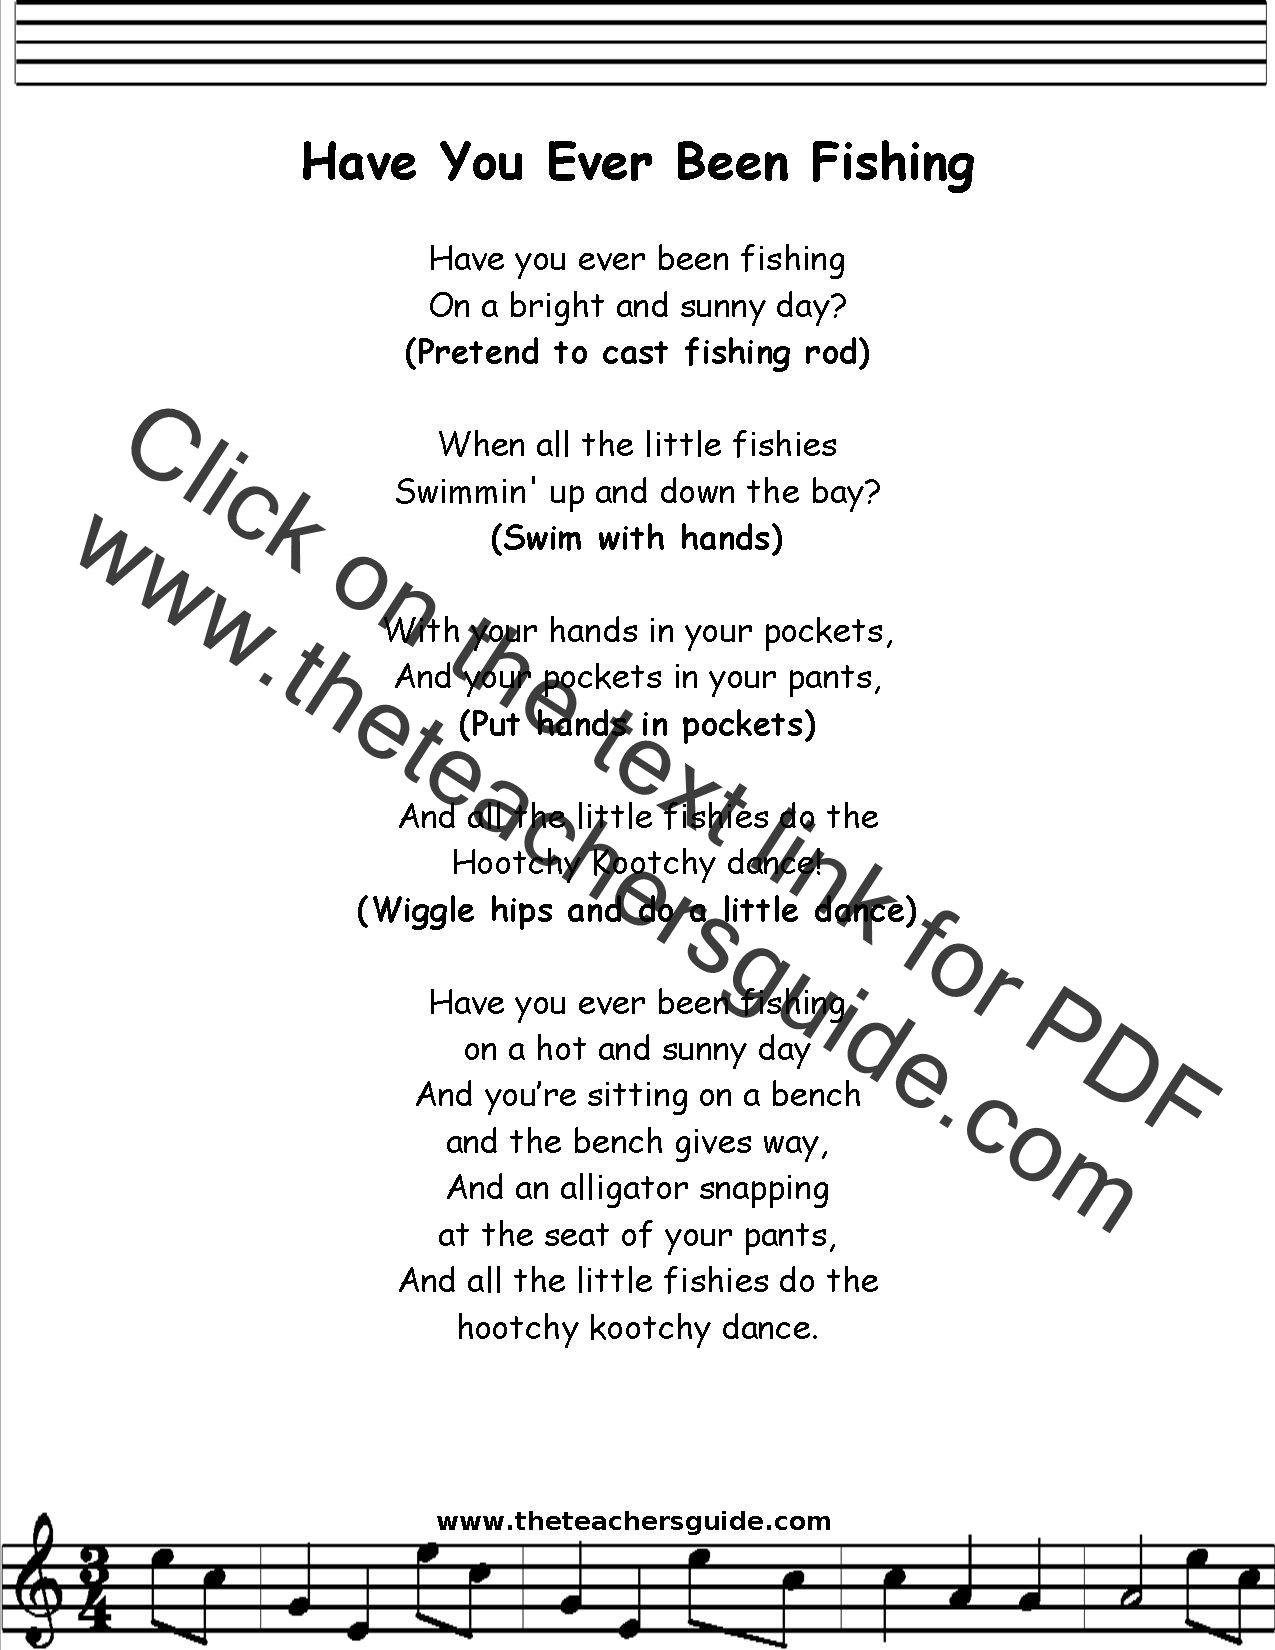 Have You Ever Been Fishing Lyrics Printout Midi And Video